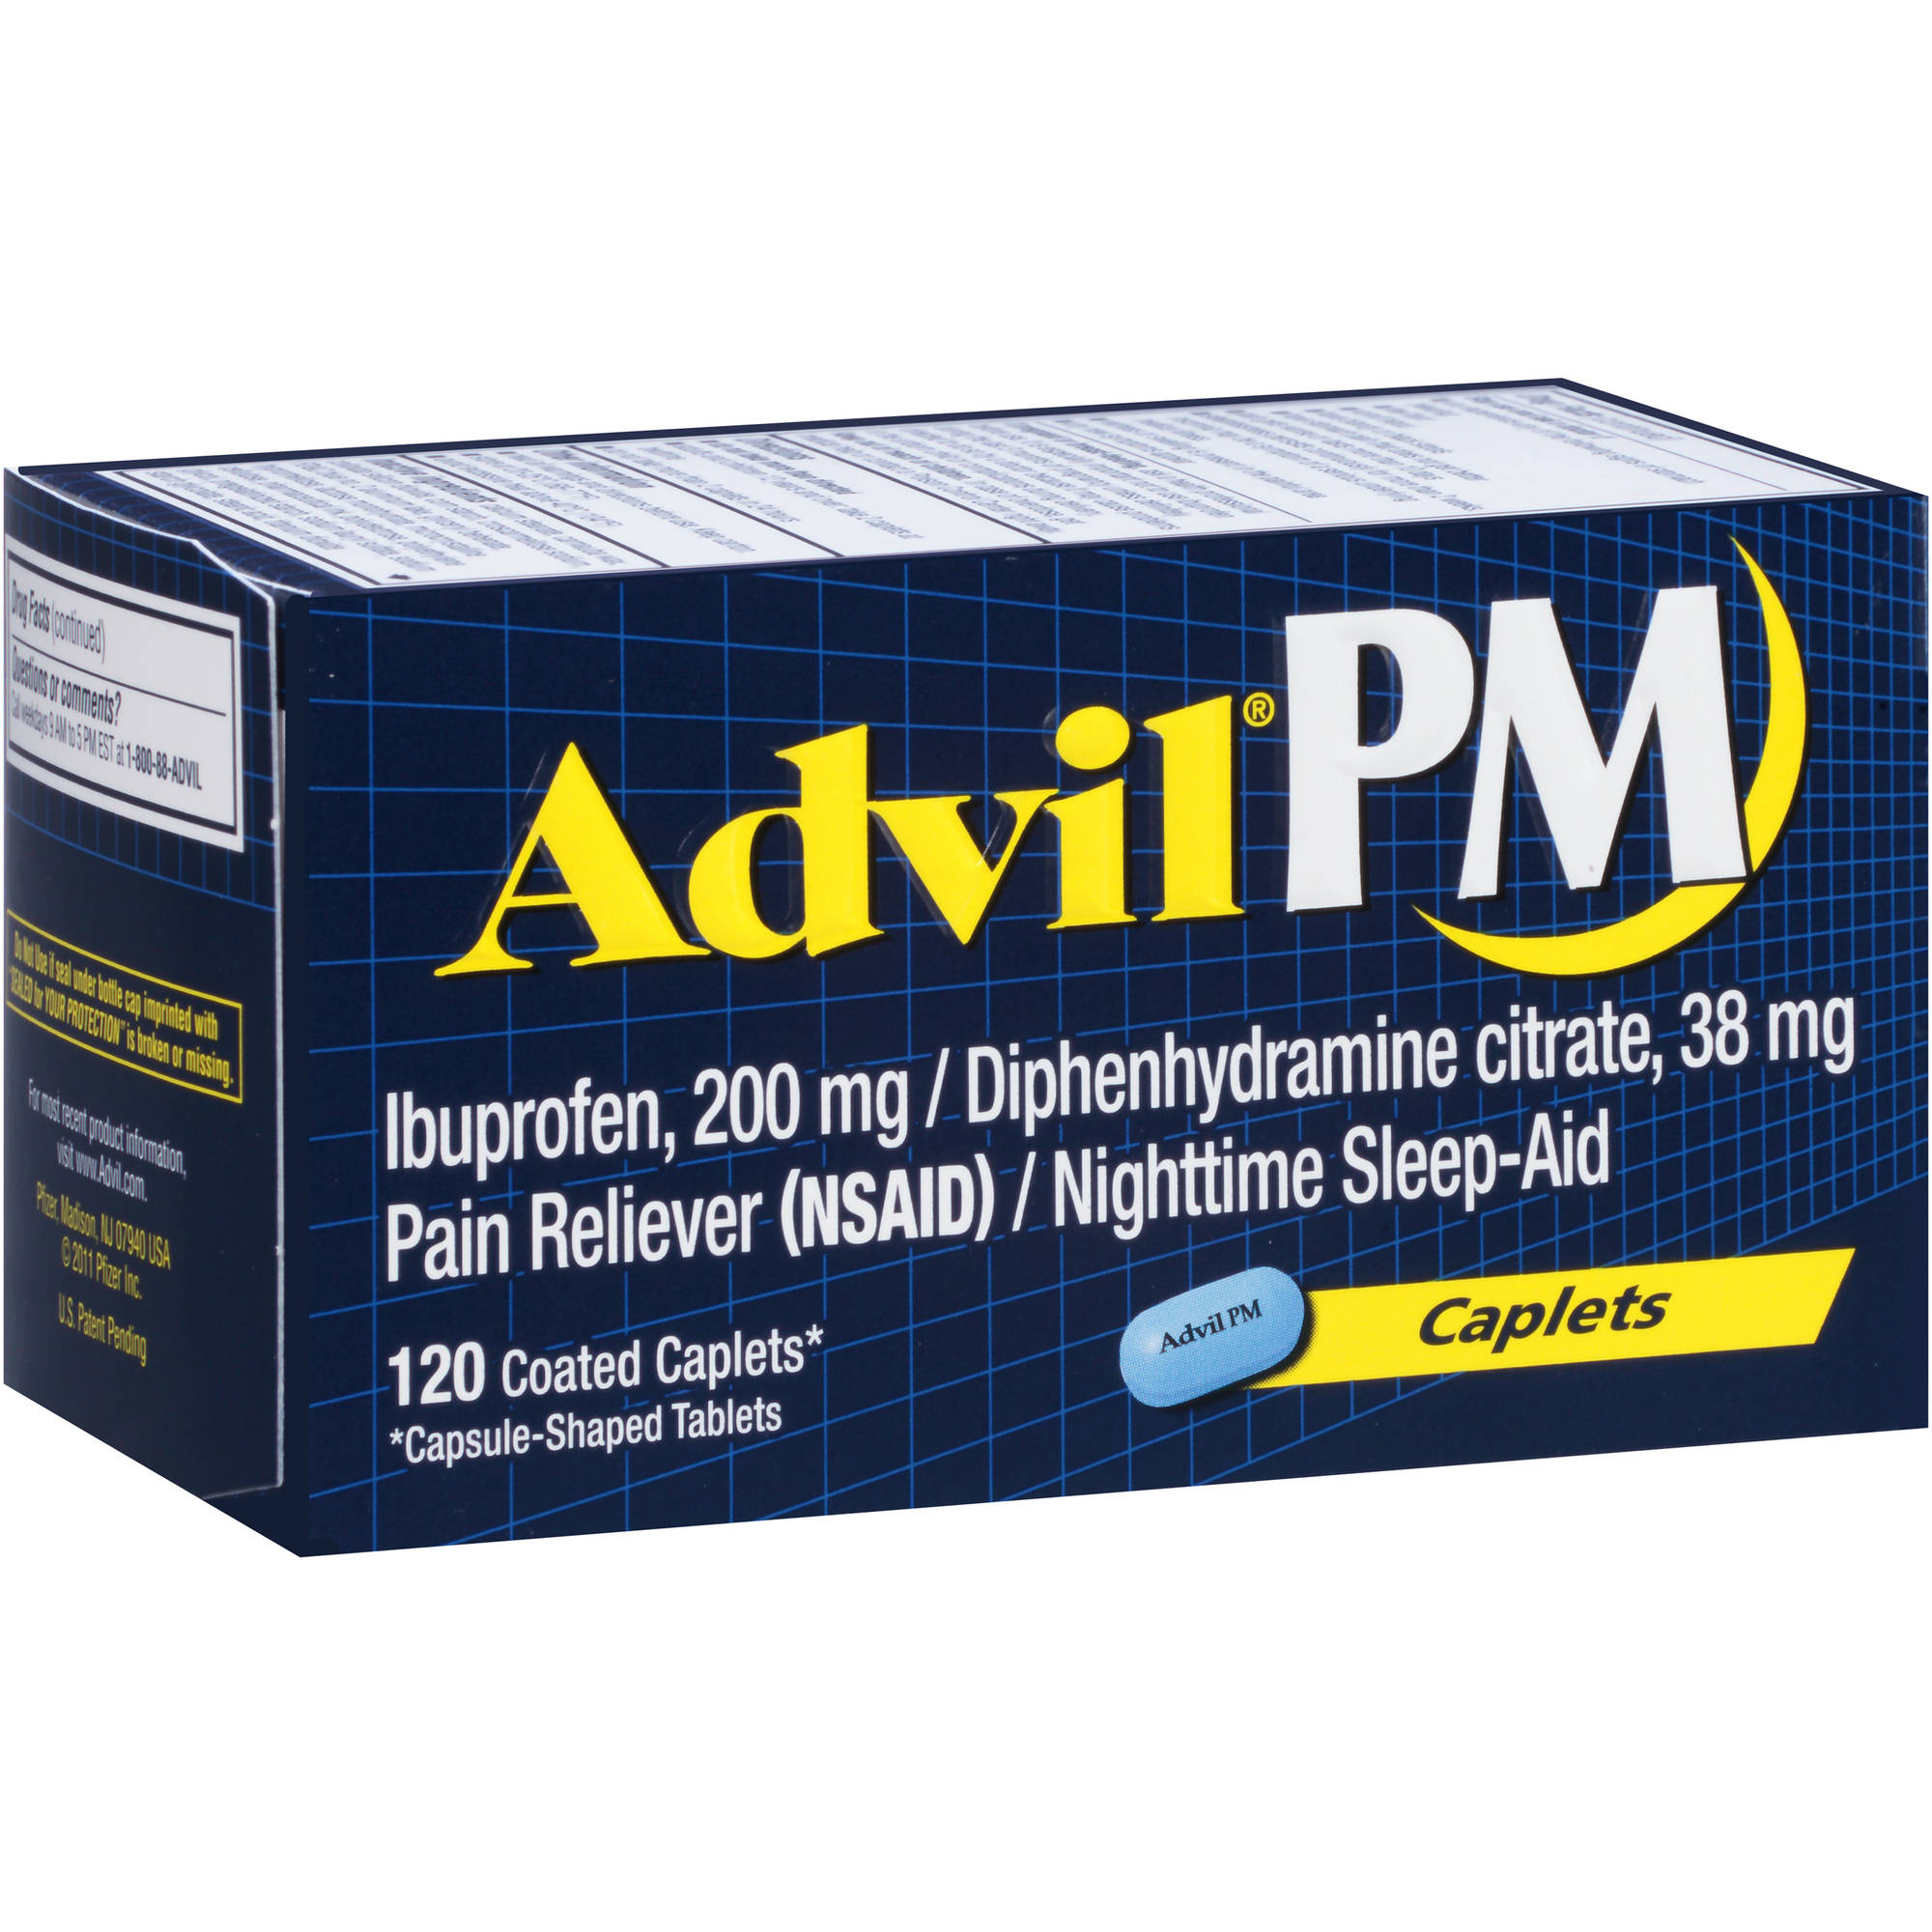 Advil PM Pain Reliever / Nighttime Sleep Aid (Ibuprofen and Diphenhydramine) 120 Count